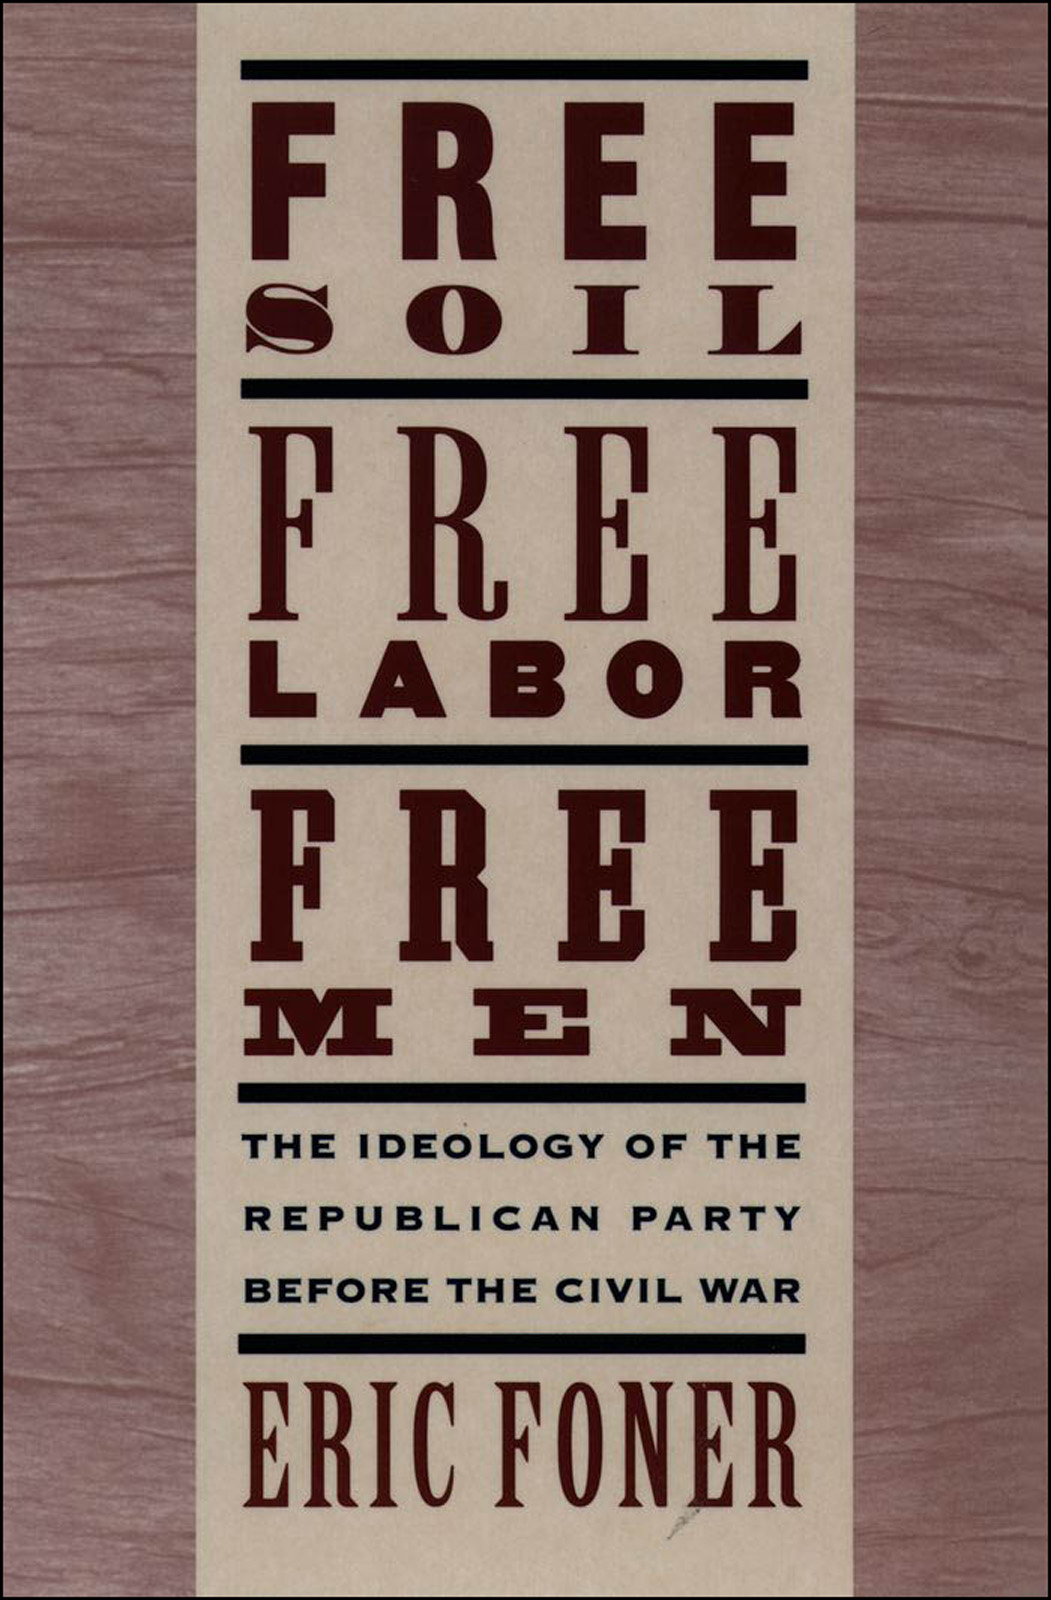 Free Soil, Free Labor, Free Men:The Ideology of the Republican Party before the Civil War With a New Introductory Essay